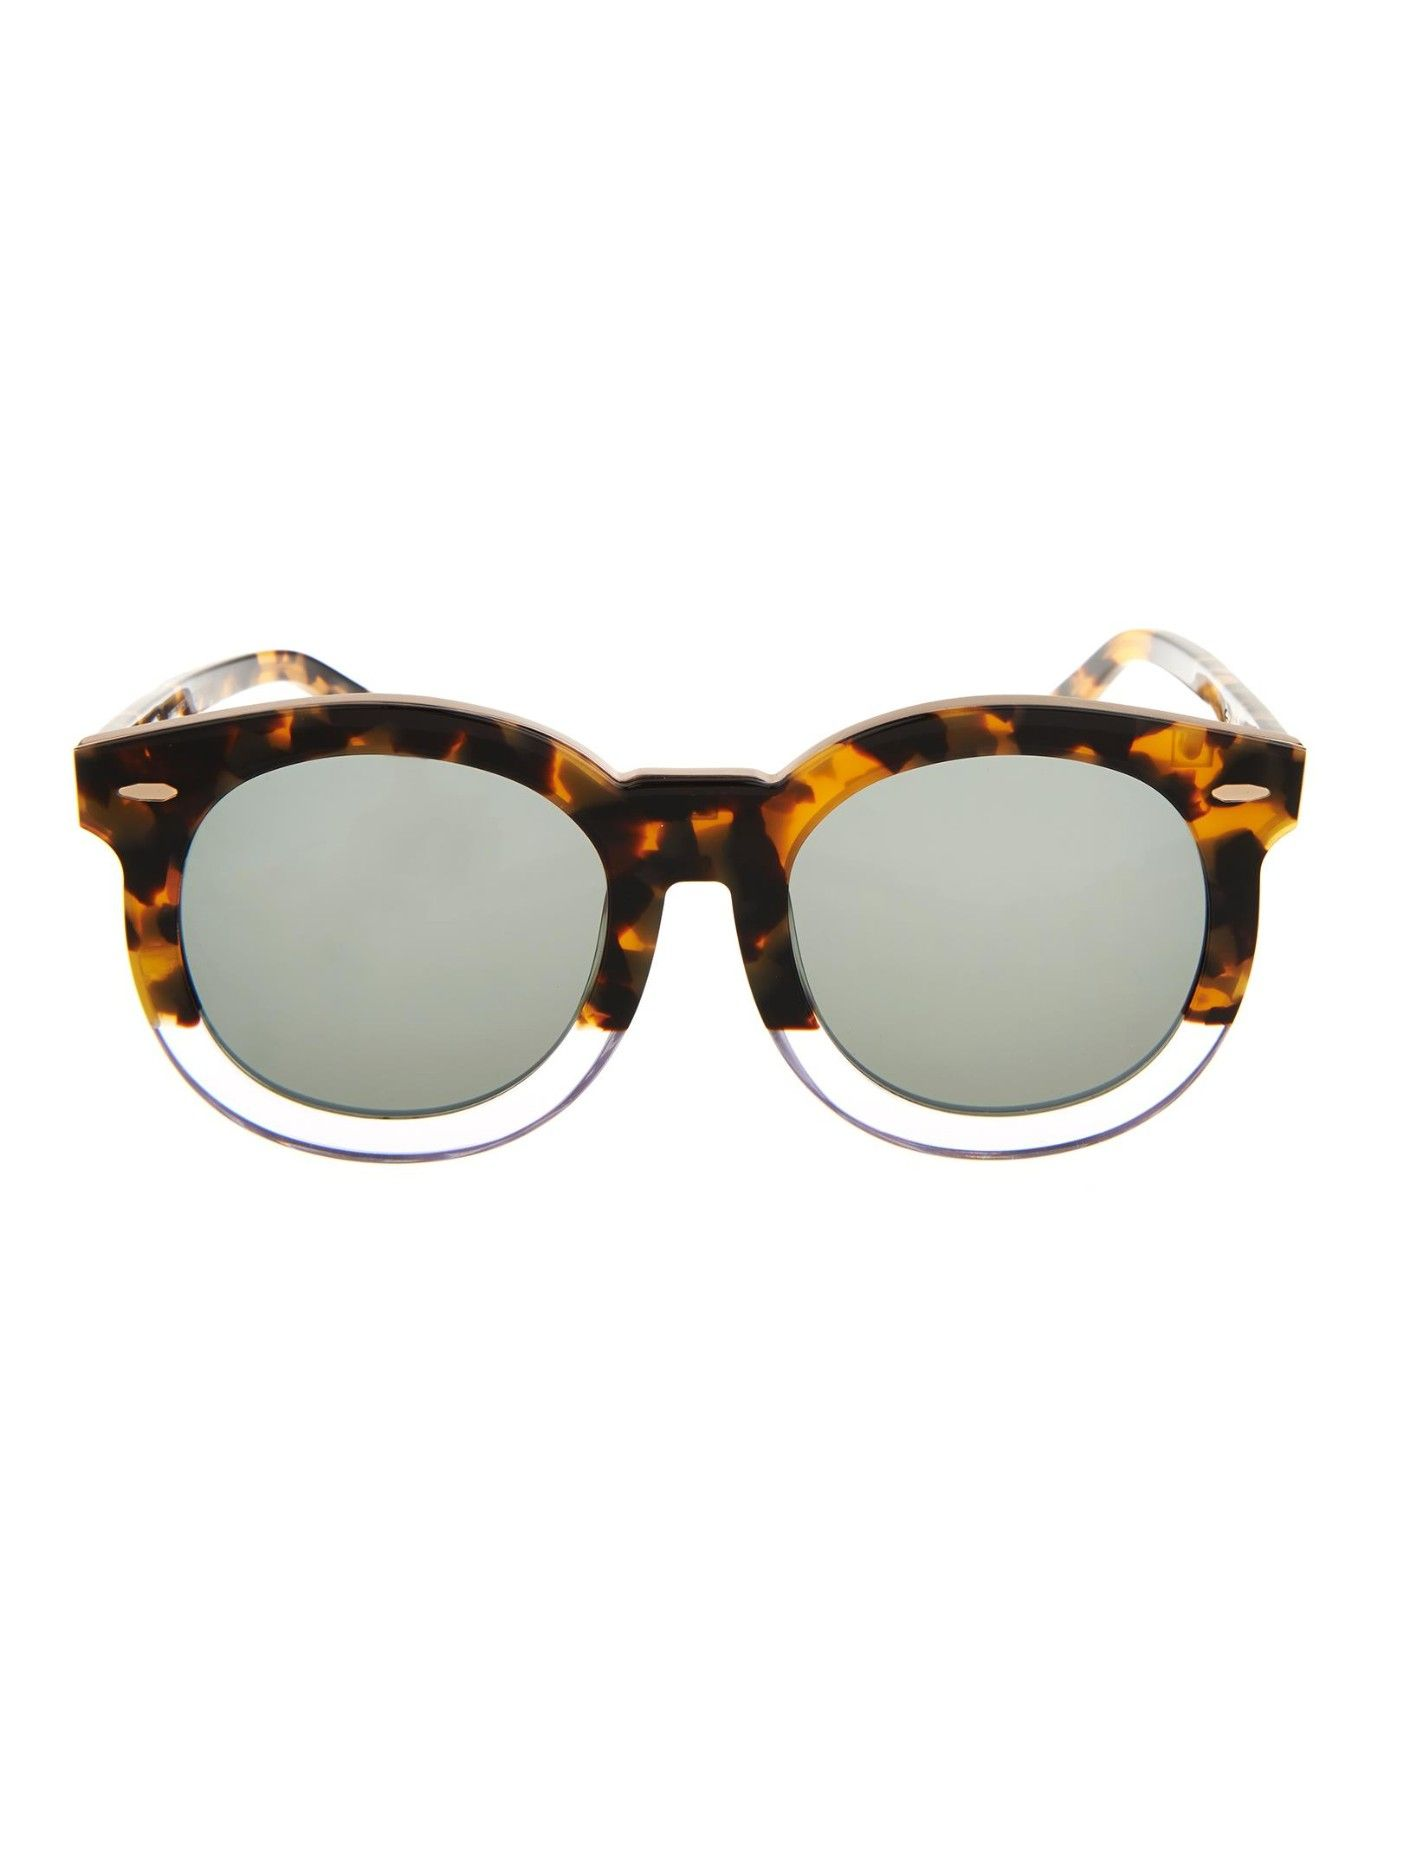 59a9190f464 Super Duper Thistle sunglasses